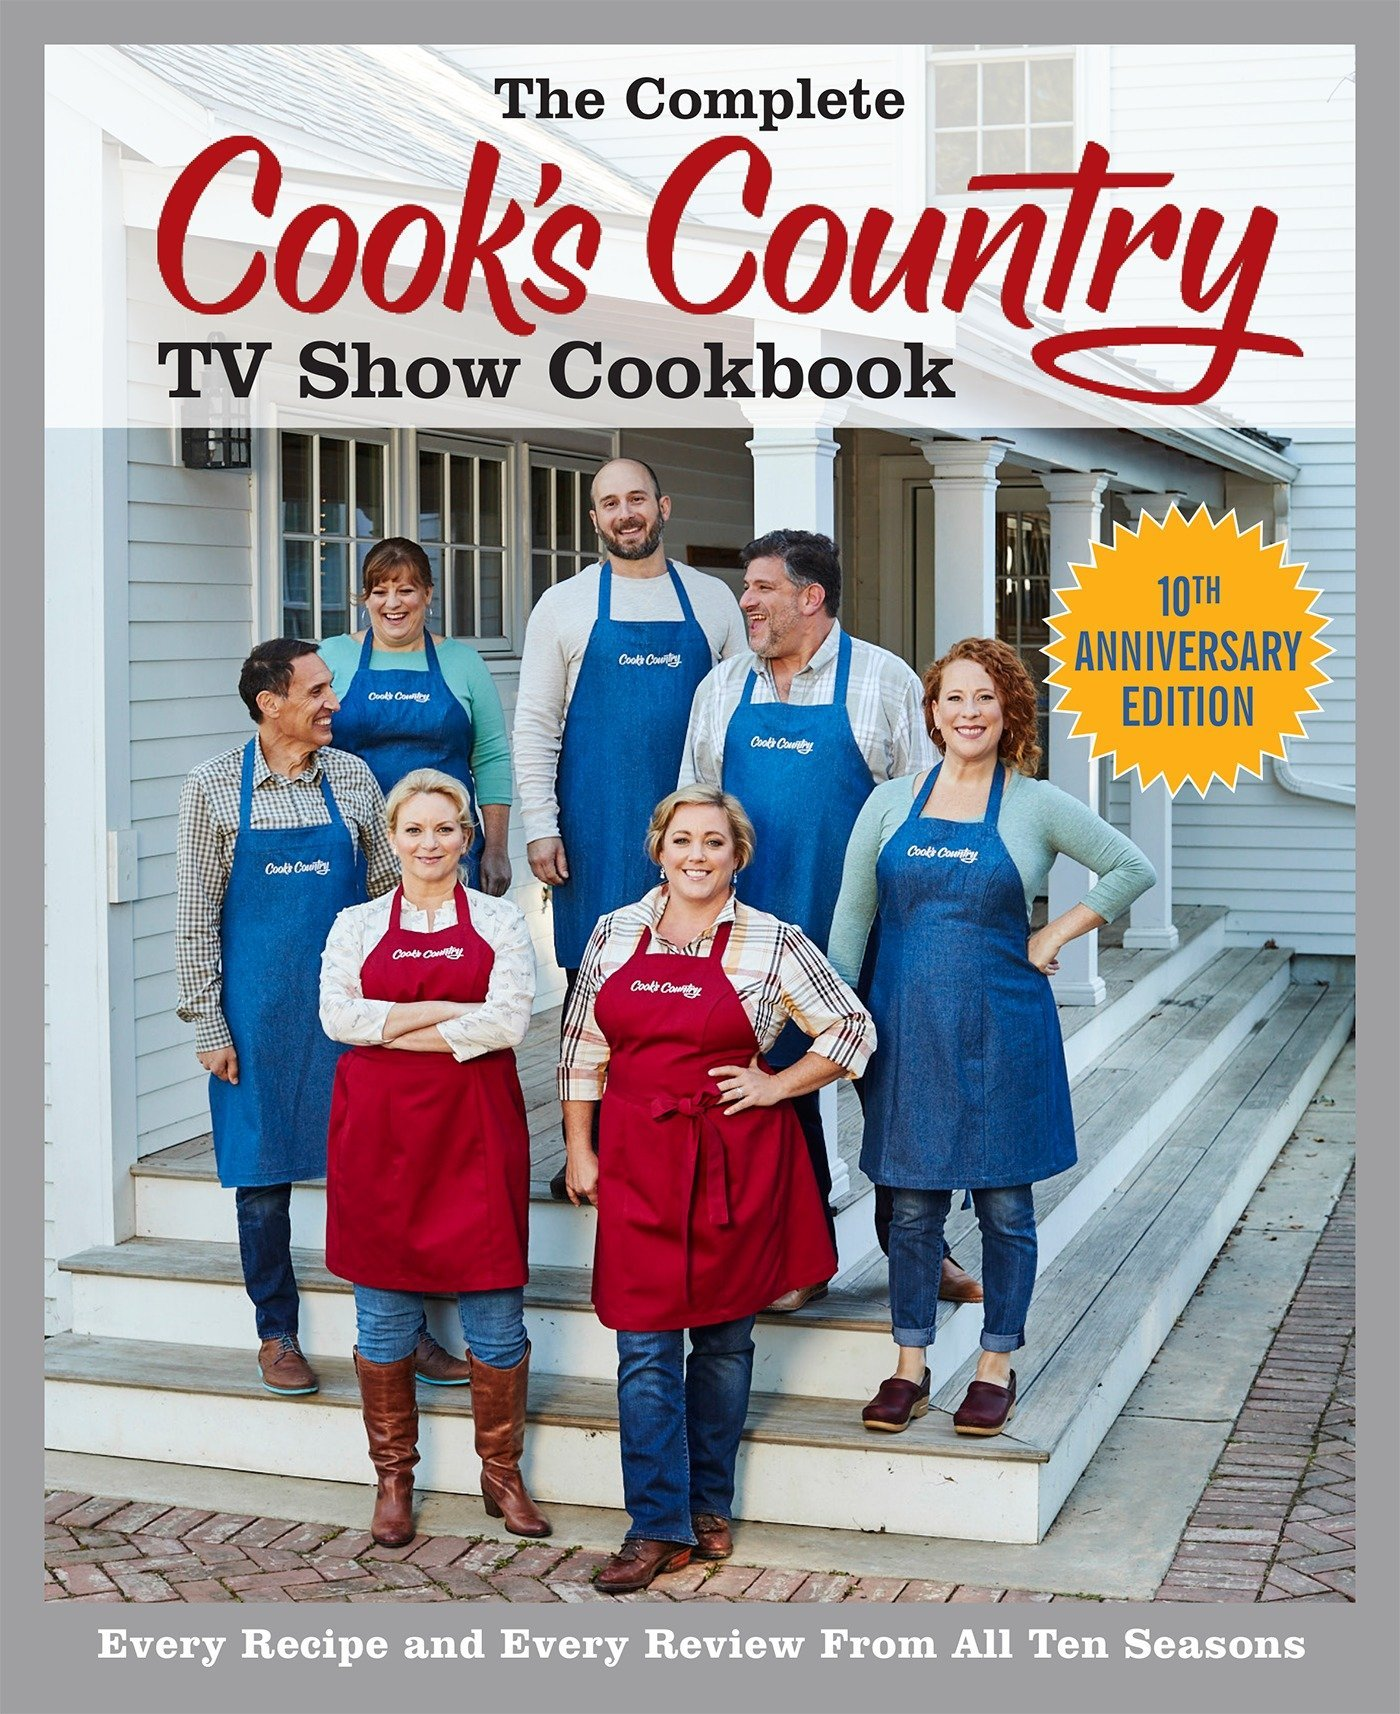 The Complete Cook's Country TV Show Cookbook 10th Anniversary Edition: Every Recipe and Every Review From All Ten Seasons by Cook s Country